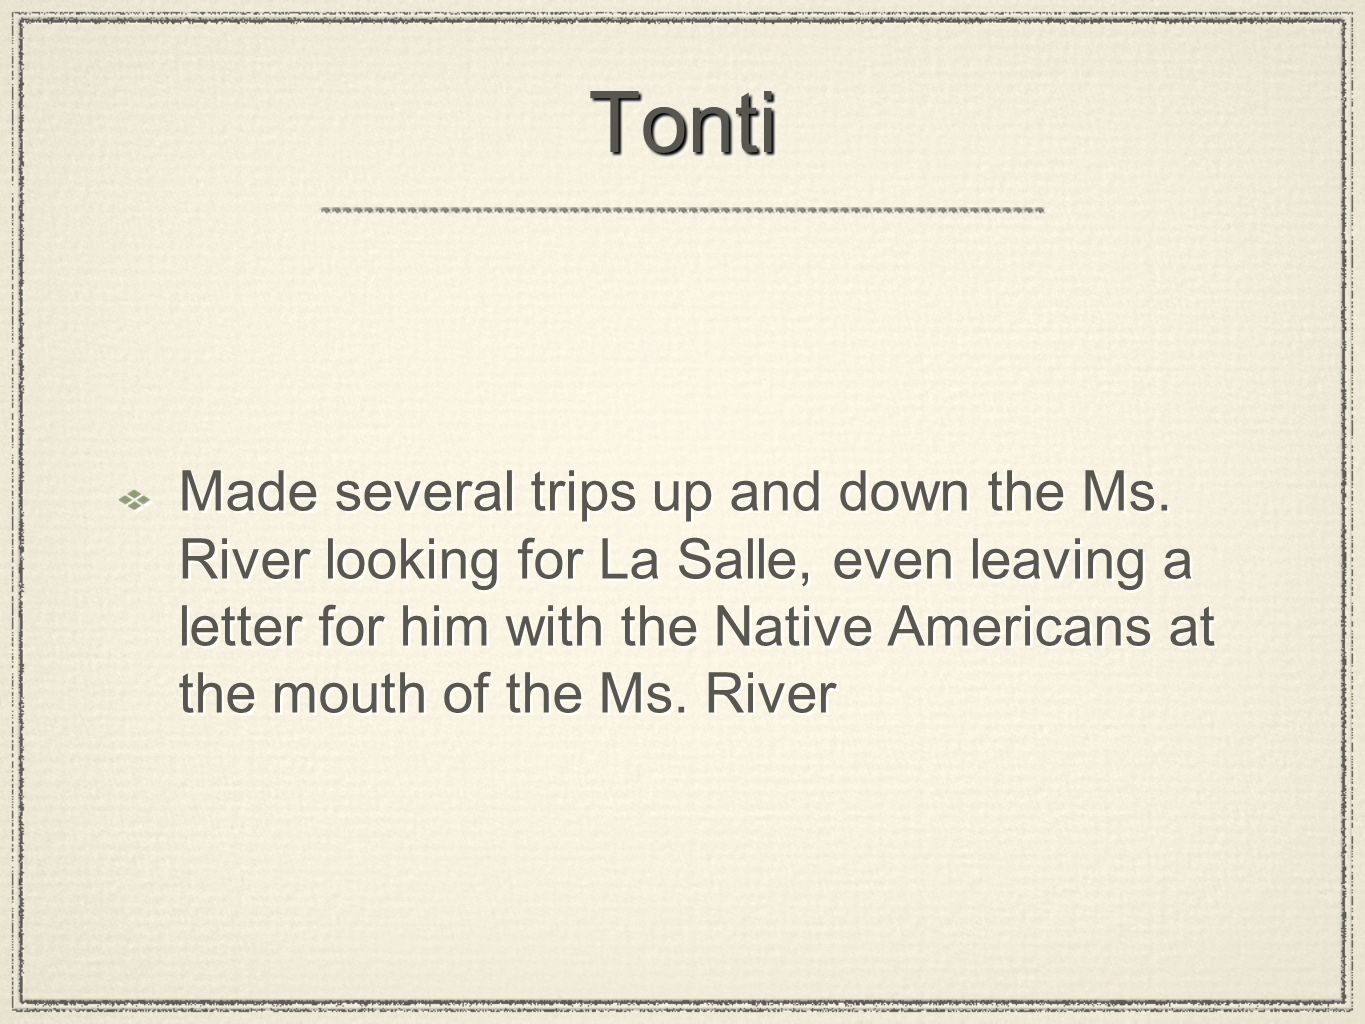 TontiTonti Made several trips up and down the Ms. River looking for La Salle, even leaving a letter for him with the Native Americans at the mouth of